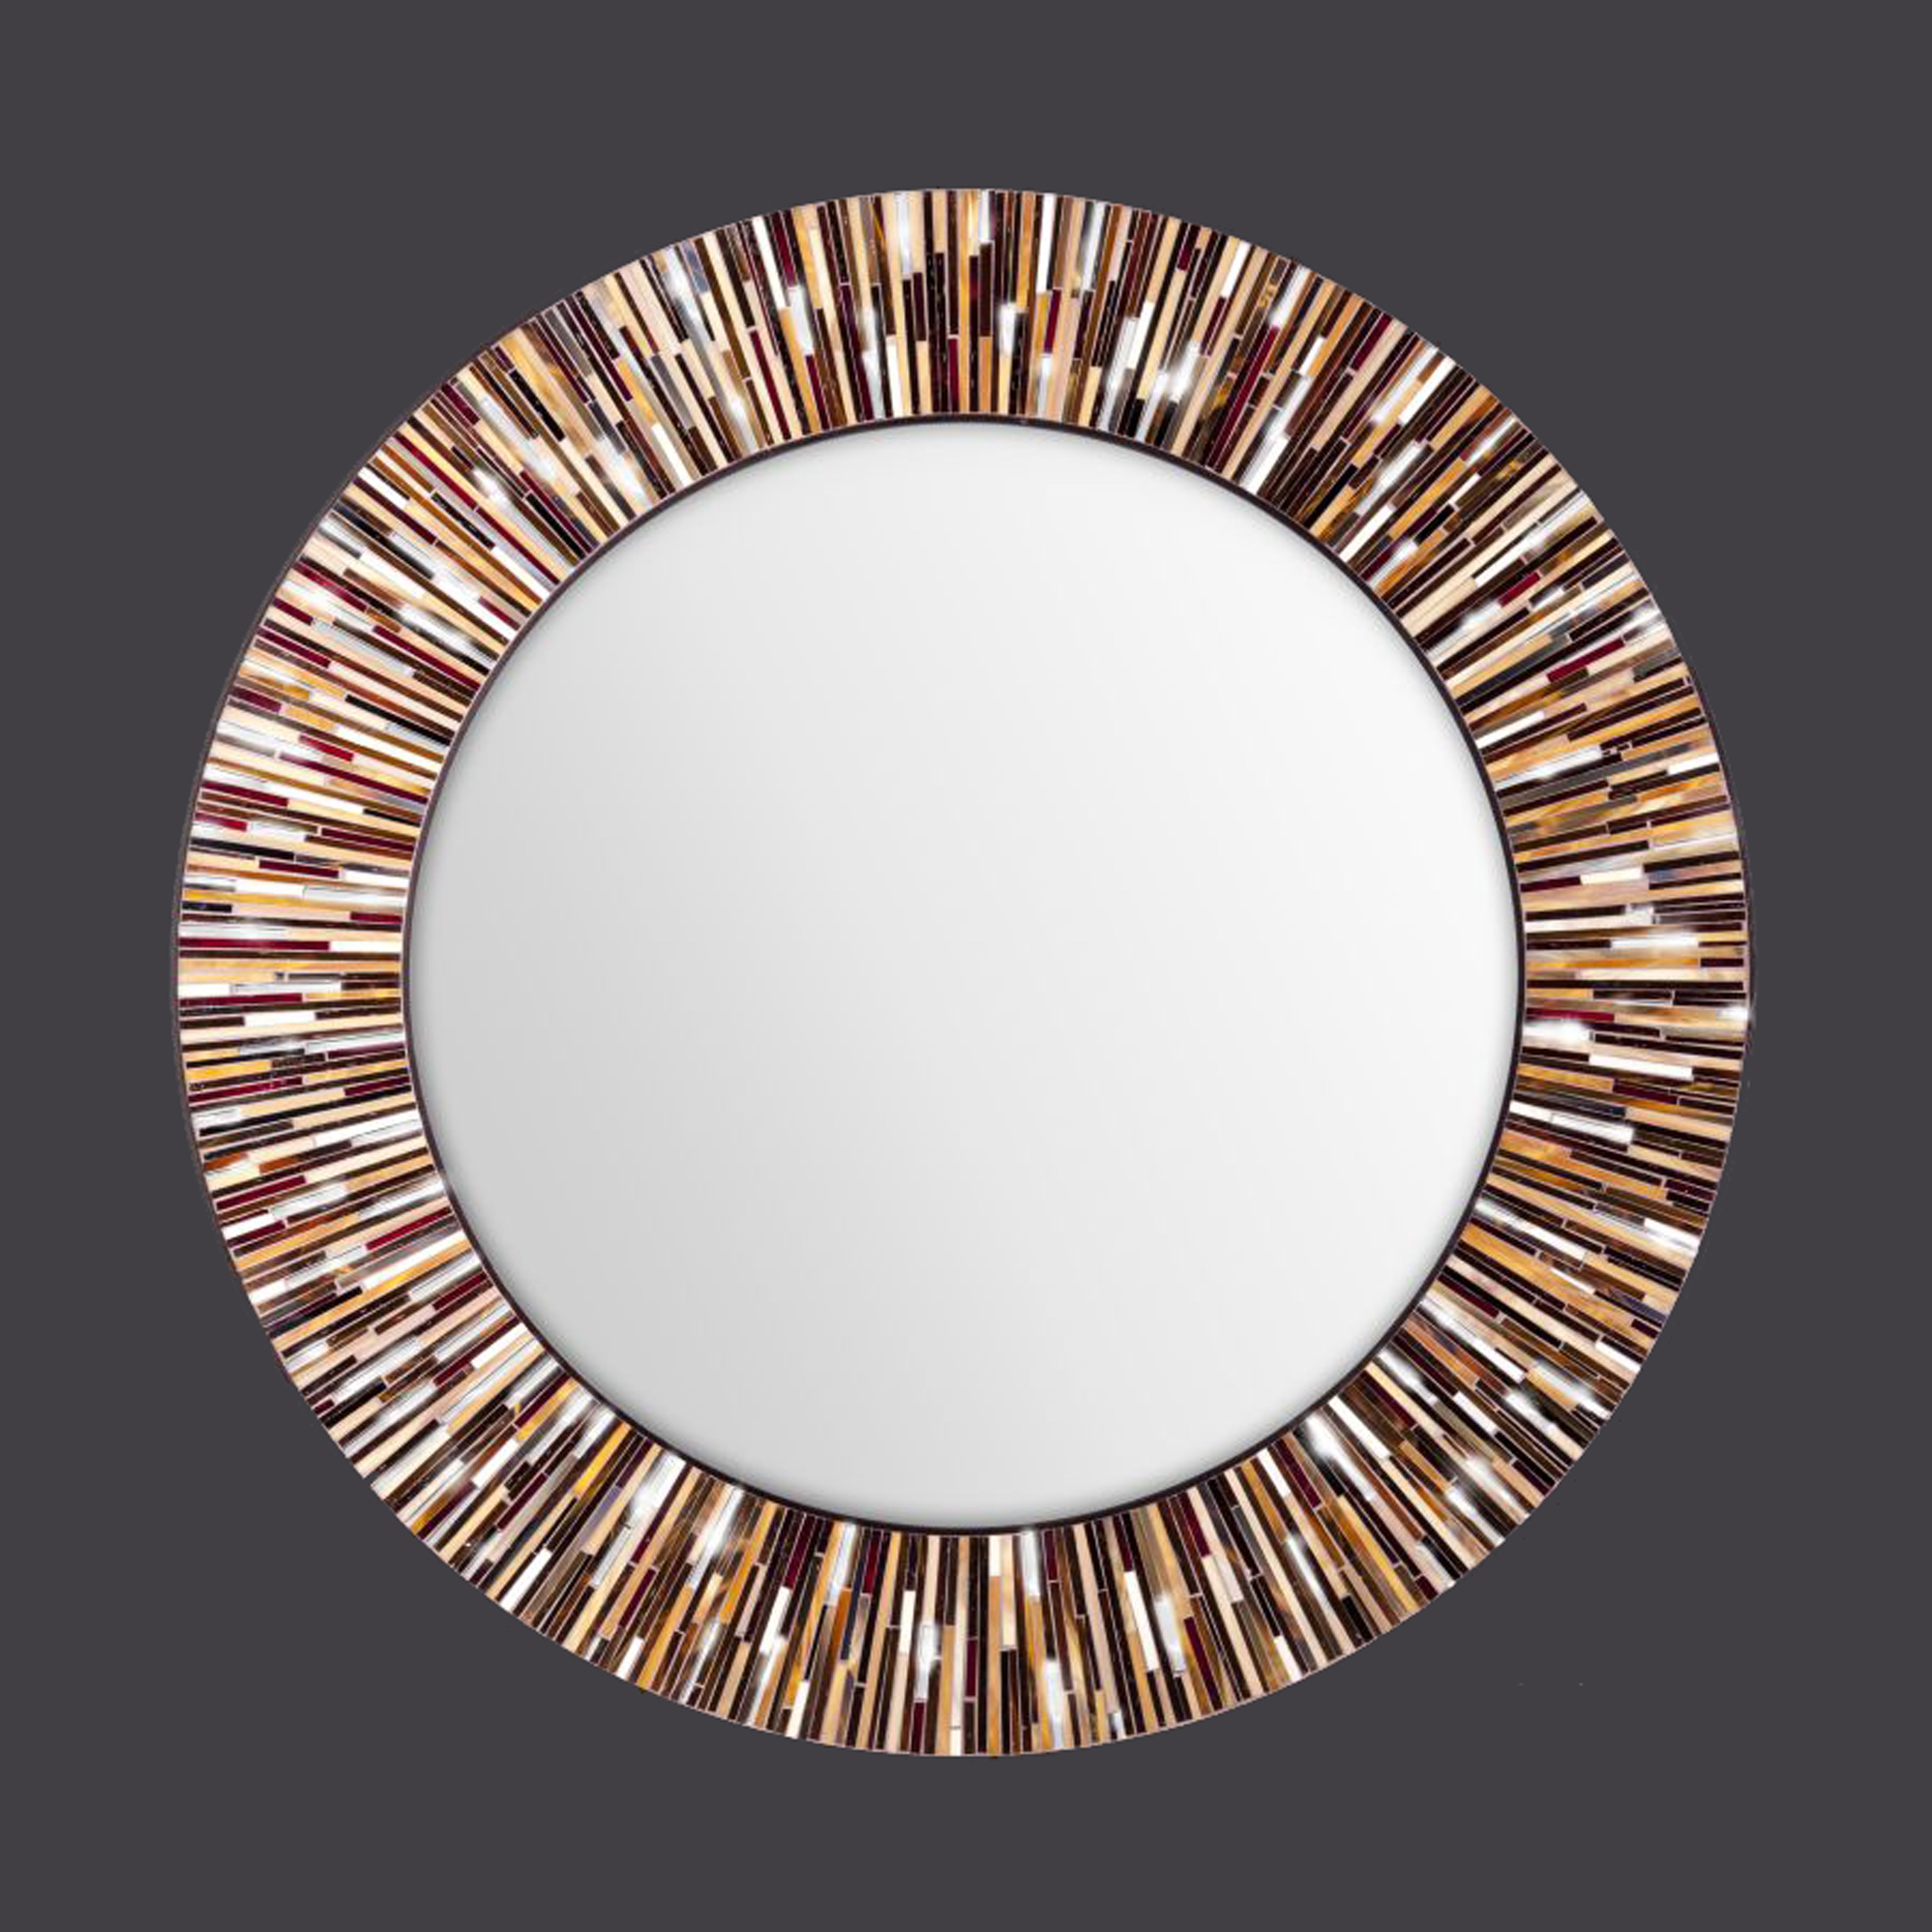 Mosaic Wall Mirrors Piaggi Intended For Large Circle Mirrors (Image 15 of 15)